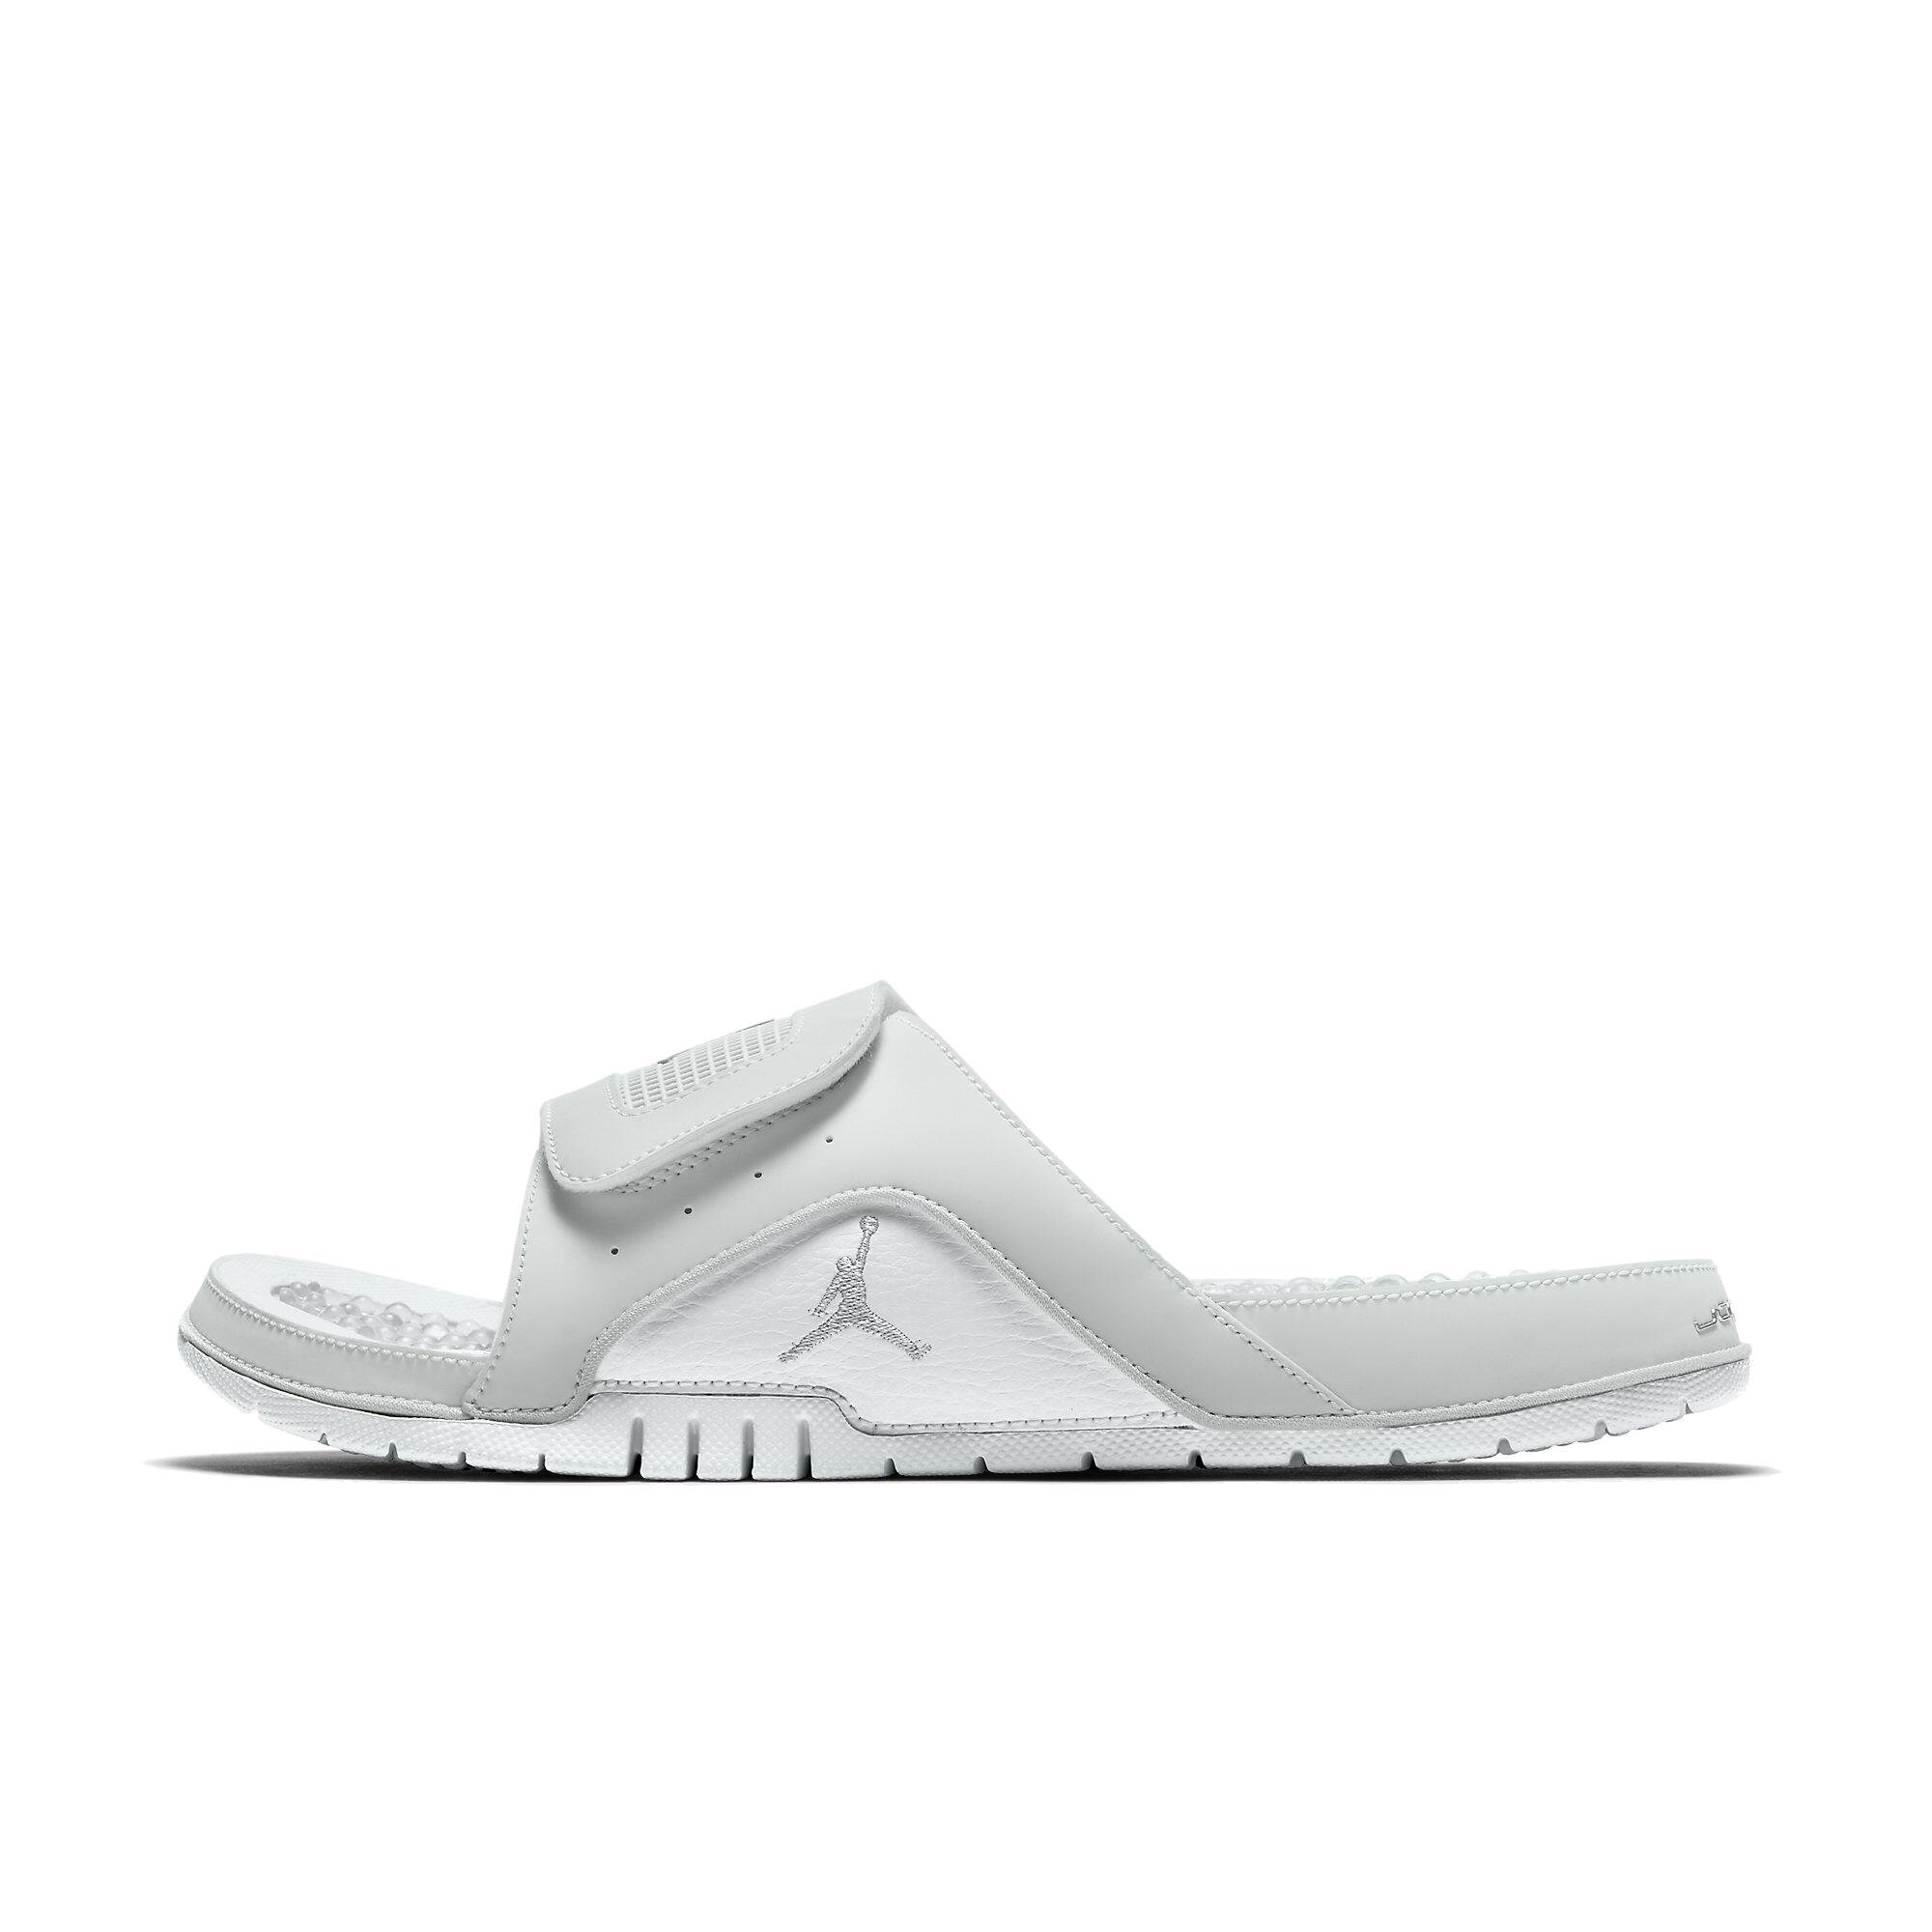 best sneakers e48f5 b9737 The slide also consists of chrome Jordan details for added sophistication.  The Jordan Hydro IV Retro is the perfect slide for any Mans relaxation  needs.